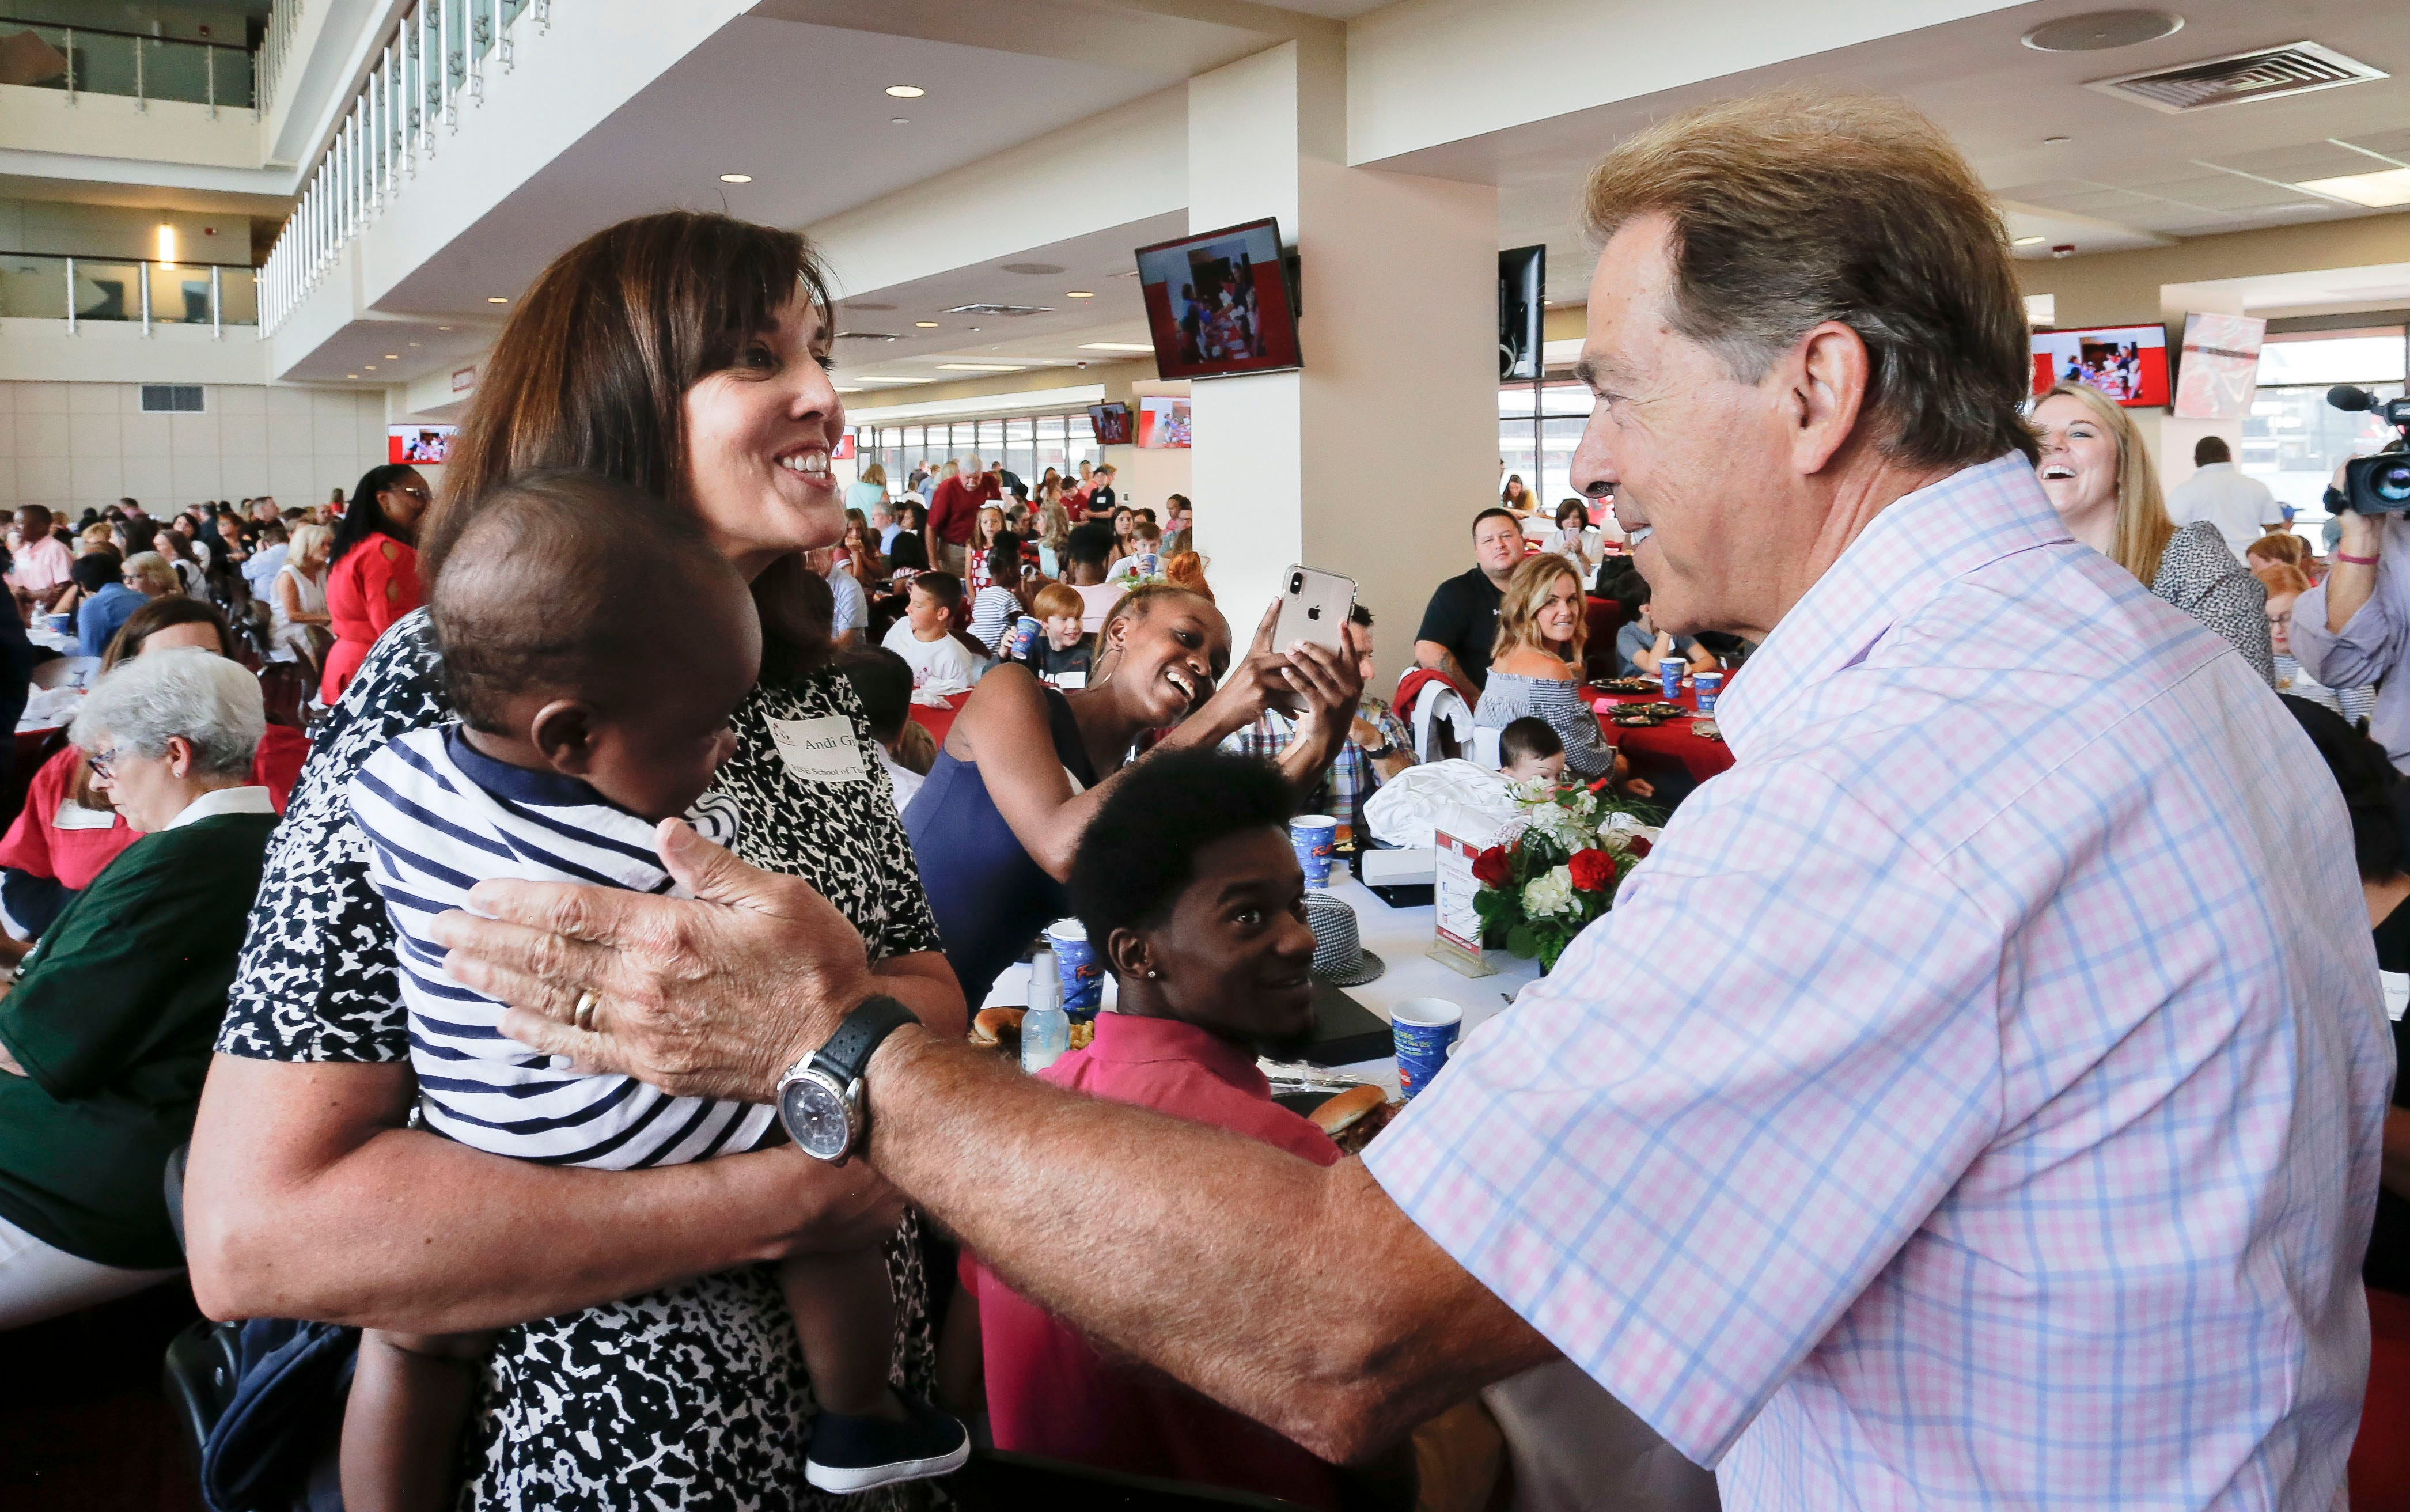 Andi Gillen, director of the Rise Center, presents one of her incoming preschool students, Royal Williams, to Coach Nick Saban during the annual Nick's Kids Foundation luncheon in Bryant-Denny Stadium Thursday August 1, 2019. [Staff Photo/Gary Cosby Jr.]